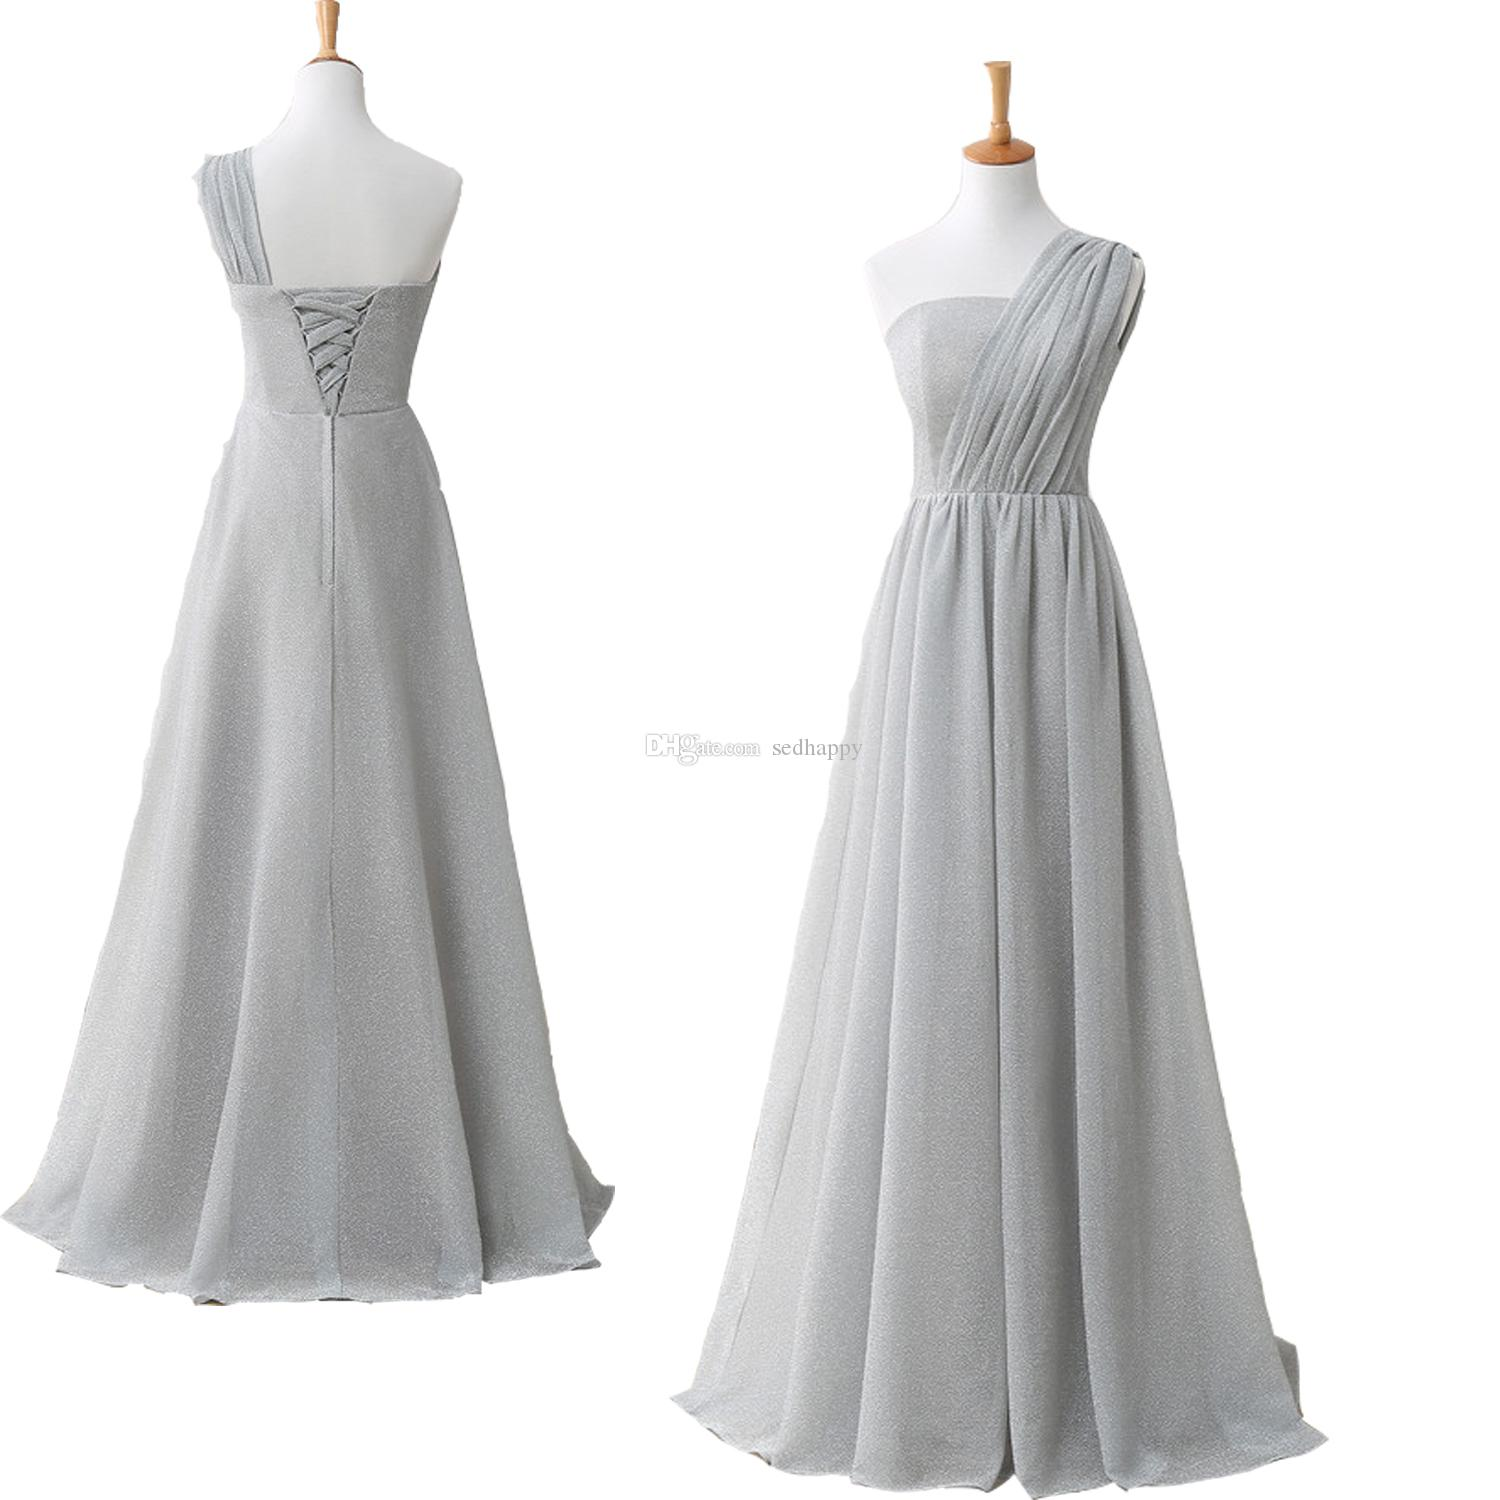 MAGGIEISAMAZING Wholesale one shoulder simple sleeveless back lace up Long Bridesmaid Dress with floor length CYH0000LG0215